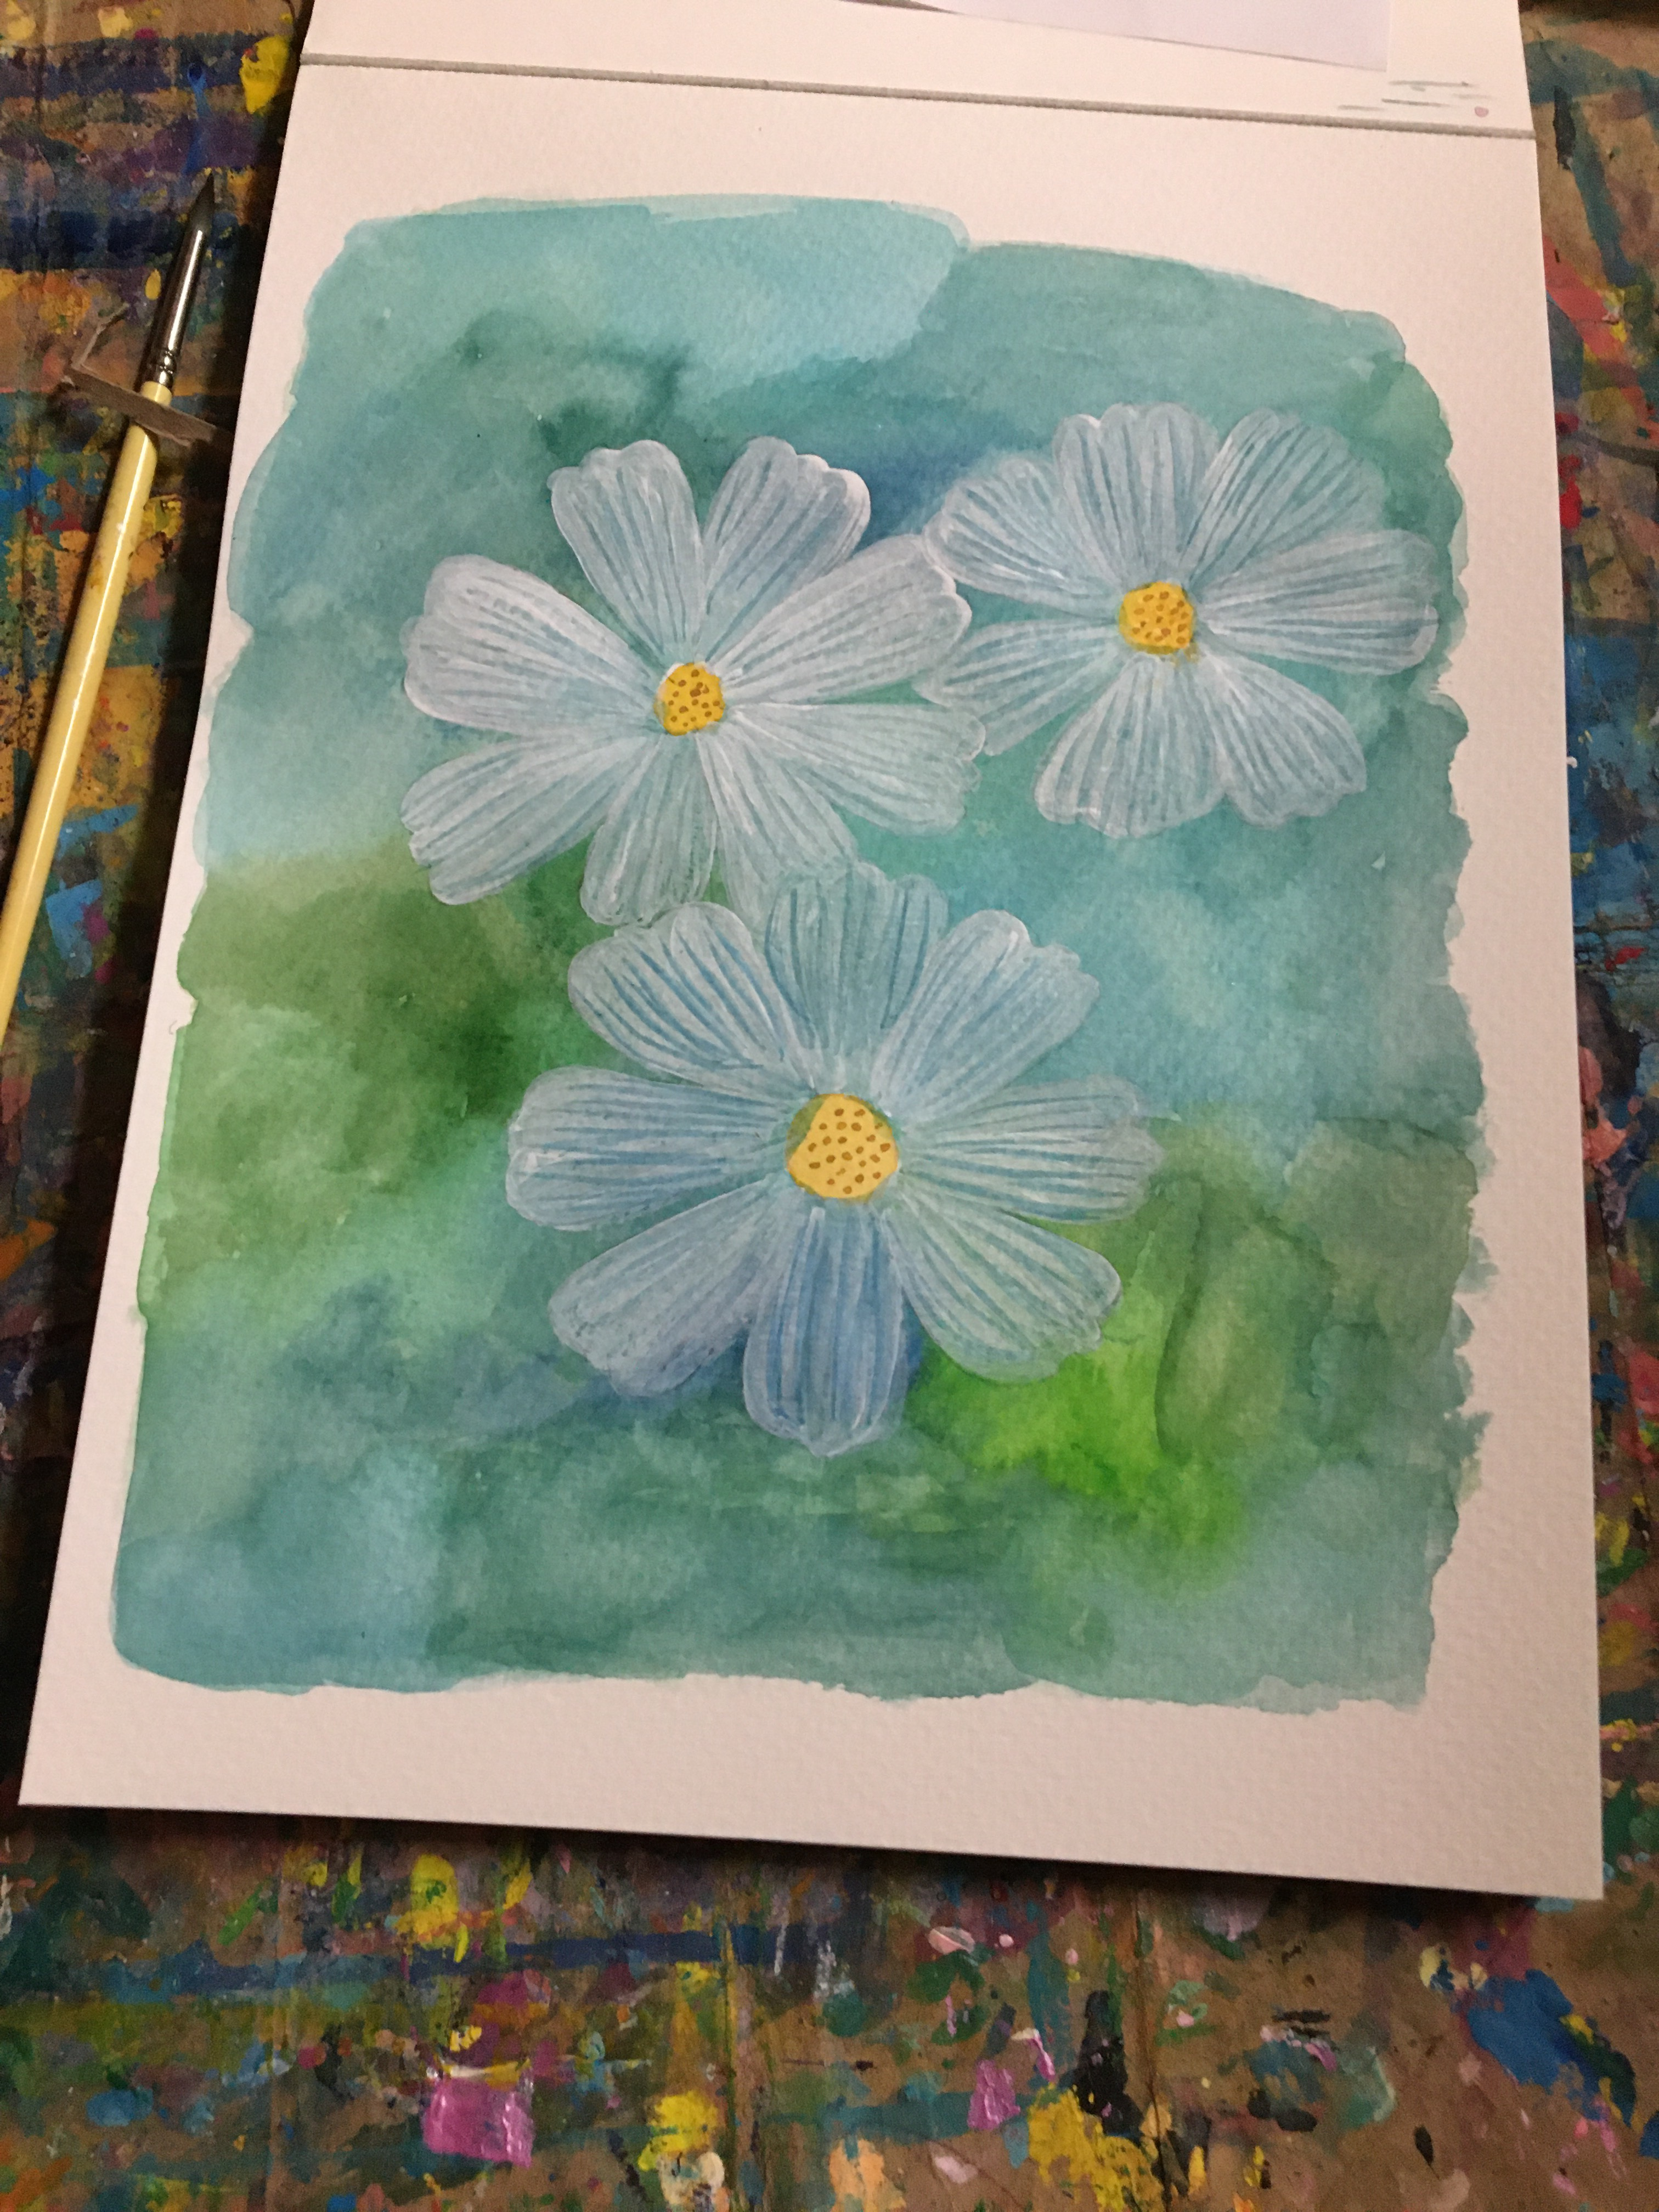 Three white cosmos painted on a blue green watercolor wash for you